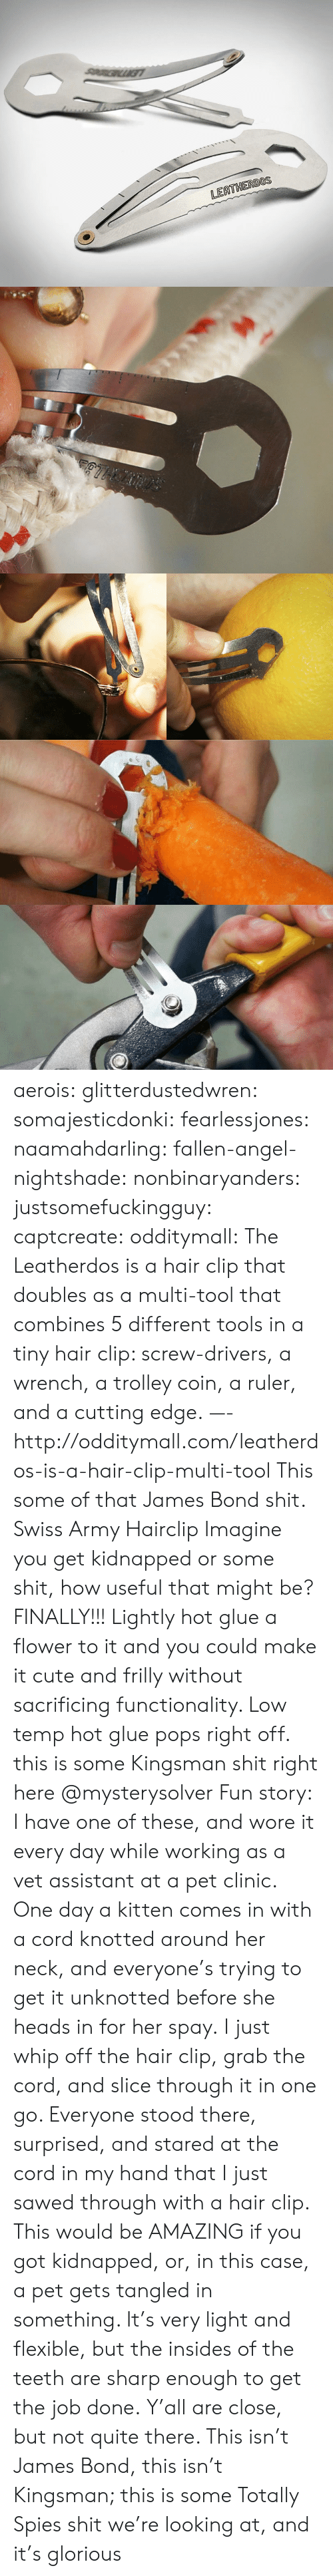 Cute, James Bond, and Shit: LEATHERDOS aerois:  glitterdustedwren:  somajesticdonki:  fearlessjones:  naamahdarling:  fallen-angel-nightshade:  nonbinaryanders:  justsomefuckingguy:  captcreate:  odditymall:  The Leatherdos is a hair clip that doubles as a multi-tool that combines 5 different tools in a tiny hair clip: screw-drivers, a wrench, a trolley coin, a ruler, and a cutting edge. —-http://odditymall.com/leatherdos-is-a-hair-clip-multi-tool  This some of that James Bond shit.  Swiss Army Hairclip  Imagine you get kidnapped or some shit, how useful that might be?  FINALLY!!!   Lightly hot glue a flower to it and you could make it cute and frilly without sacrificing functionality. Low temp hot glue pops right off.   this is some Kingsman shit right here   @mysterysolver  Fun story: I have one of these, and wore it every day while working as a vet assistant at a pet clinic. One day a kitten comes in with a cord knotted around her neck, and everyone's trying to get it unknotted before she heads in for her spay. I just whip off the hair clip, grab the cord, and slice through it in one go. Everyone stood there, surprised, and stared at the cord in my hand that I just sawed through with a hair clip.  This would be AMAZING if you got kidnapped, or, in this case, a pet gets tangled in something. It's very light and flexible, but the insides of the teeth are sharp enough to get the job done.  Y'all are close, but not quite there. This isn't James Bond, this isn't Kingsman; this is some Totally Spies shit we're looking at, and it's glorious